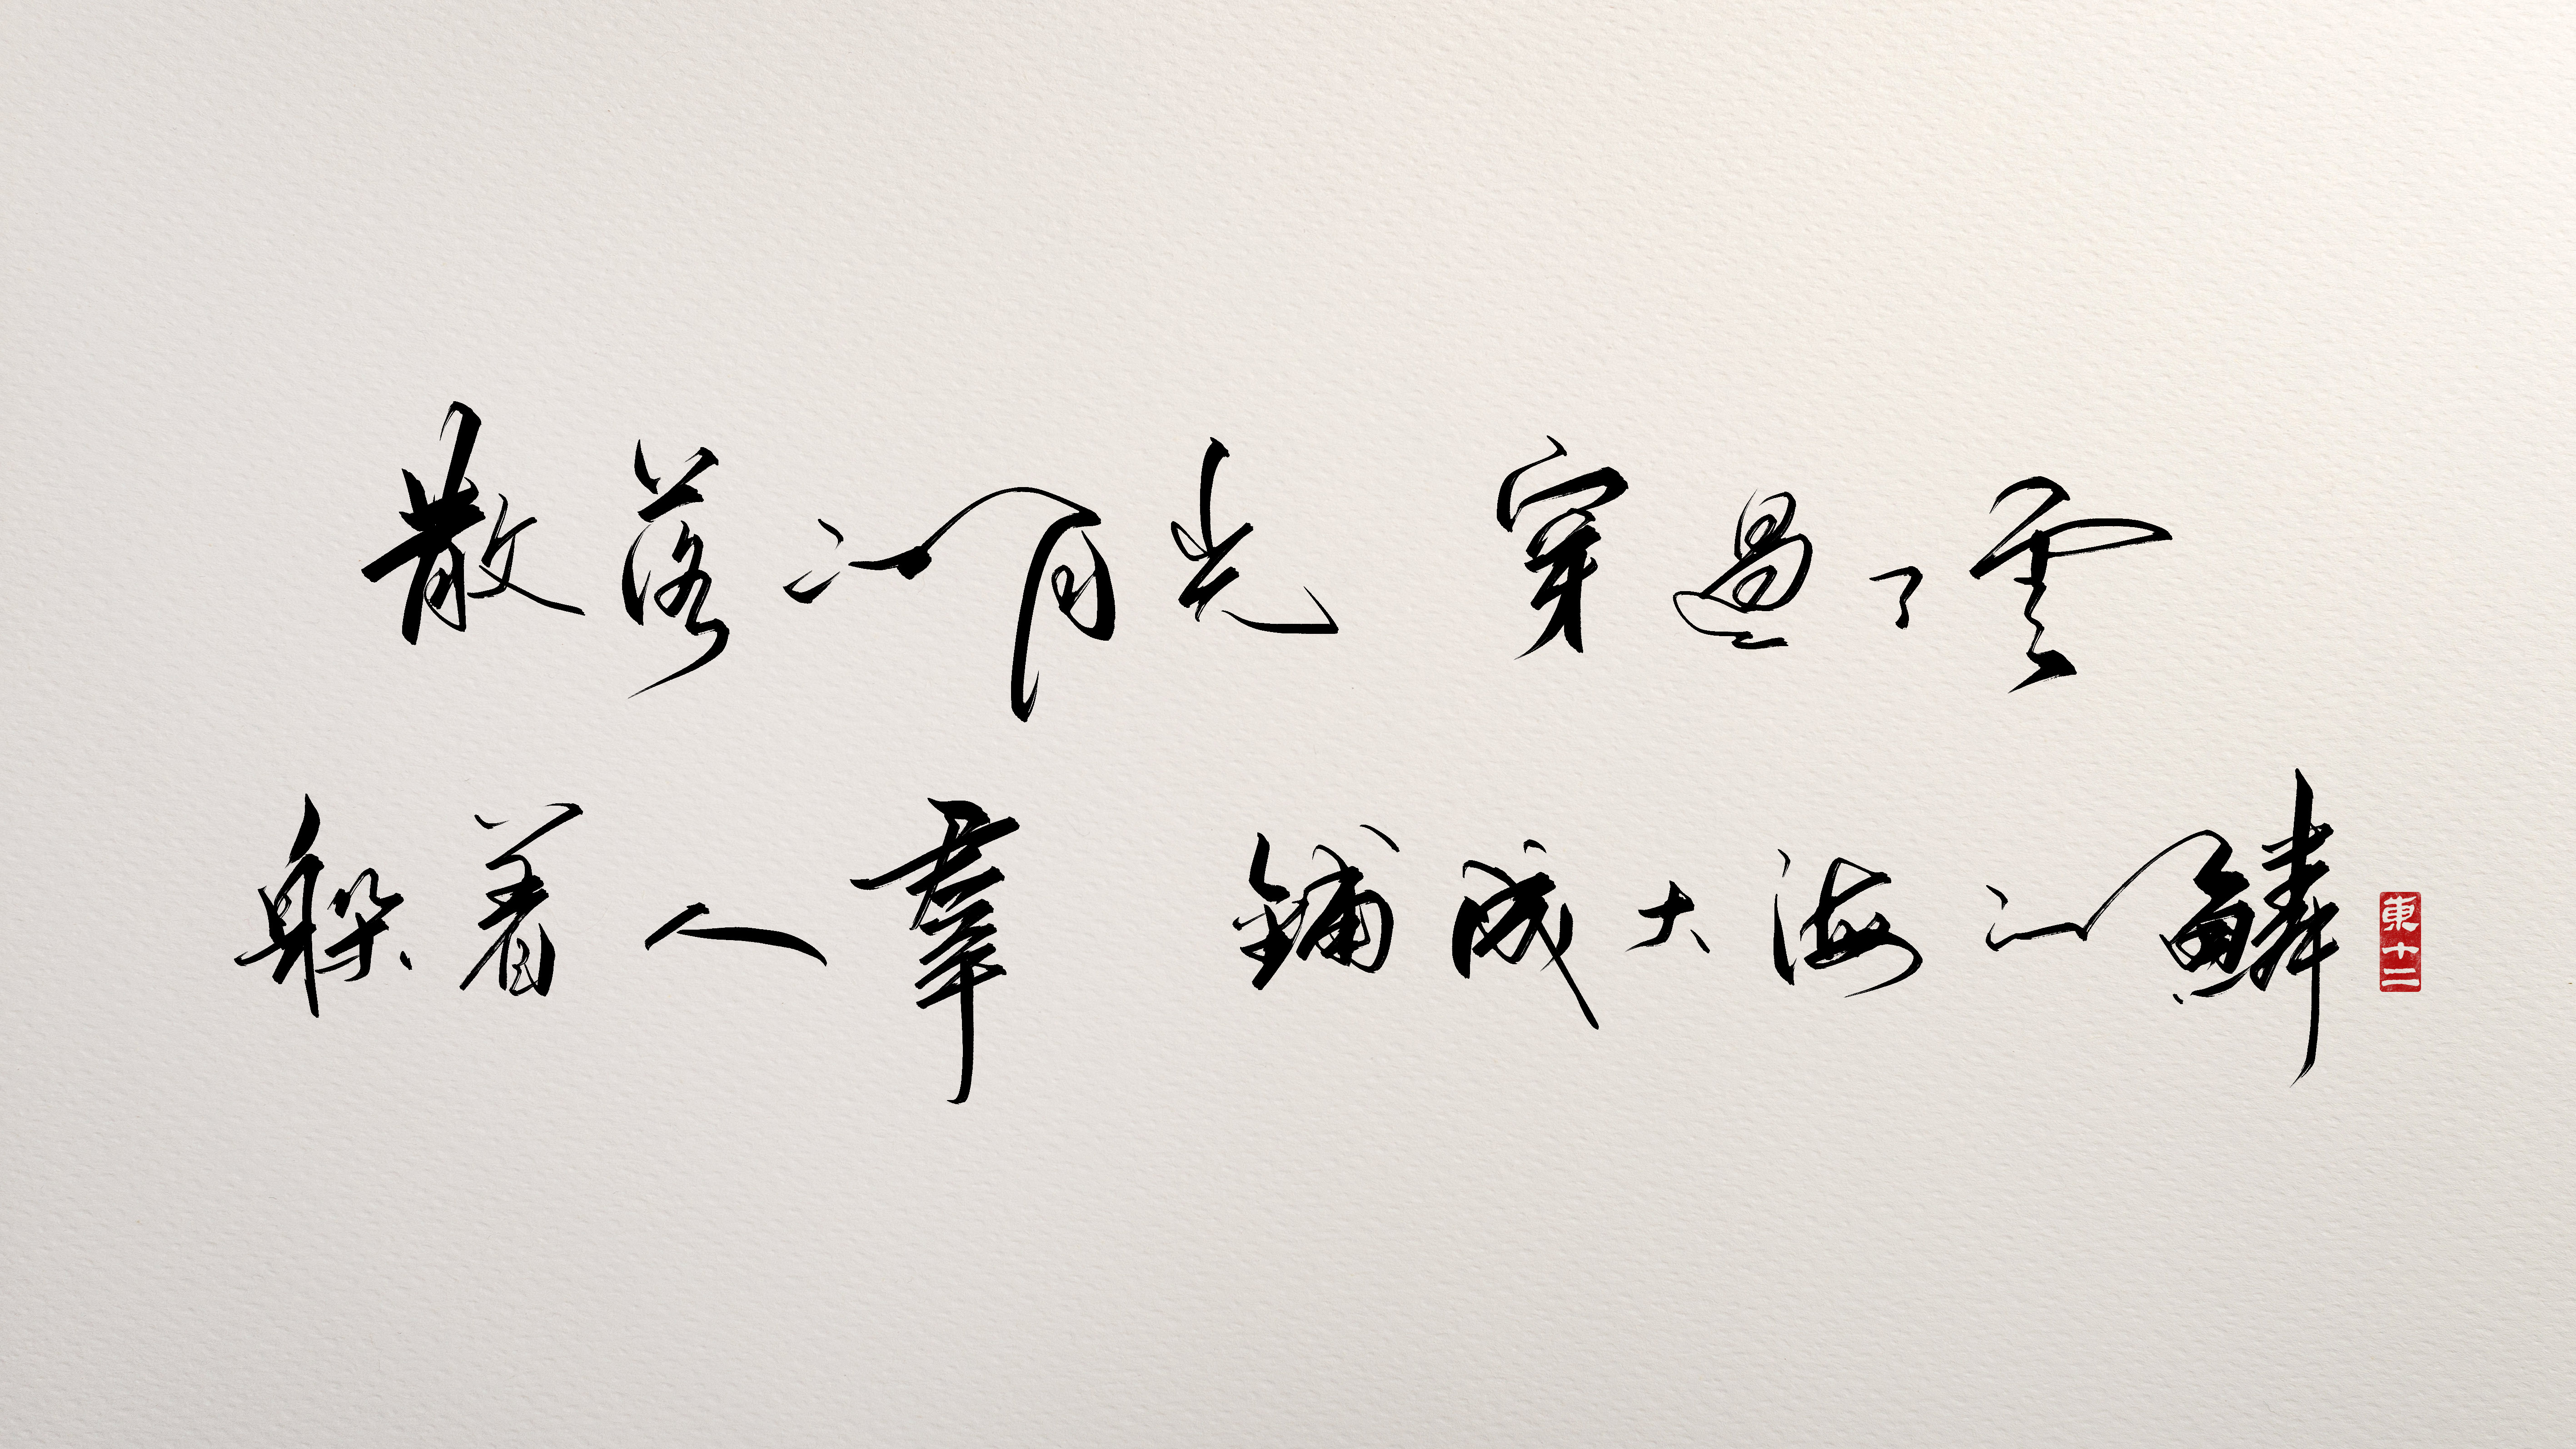 22P Artistic conception of Chinese calligraphy design and creation